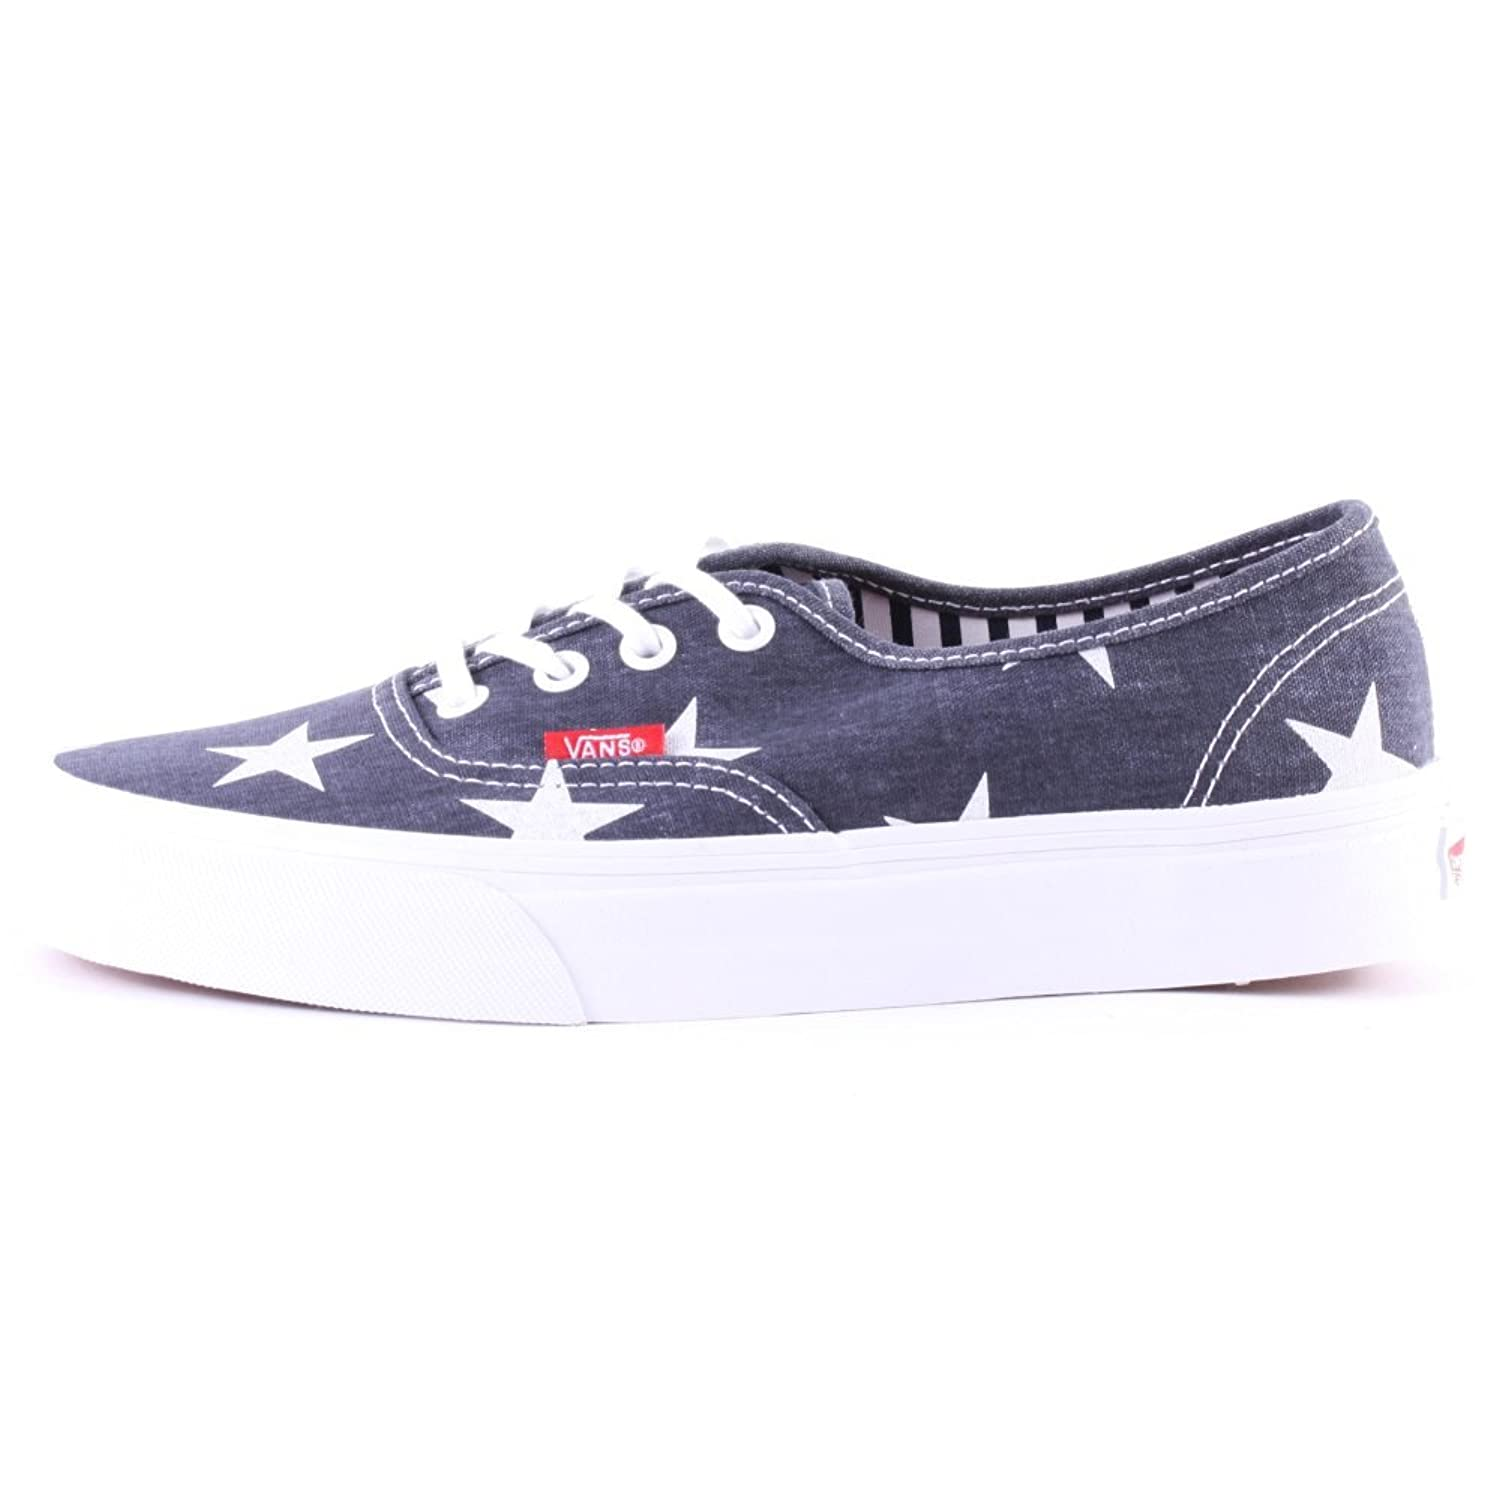 3c1552a587 Vans Stars and Stripes Authentic Womens Trainers  Amazon.co.uk  Shoes   Bags